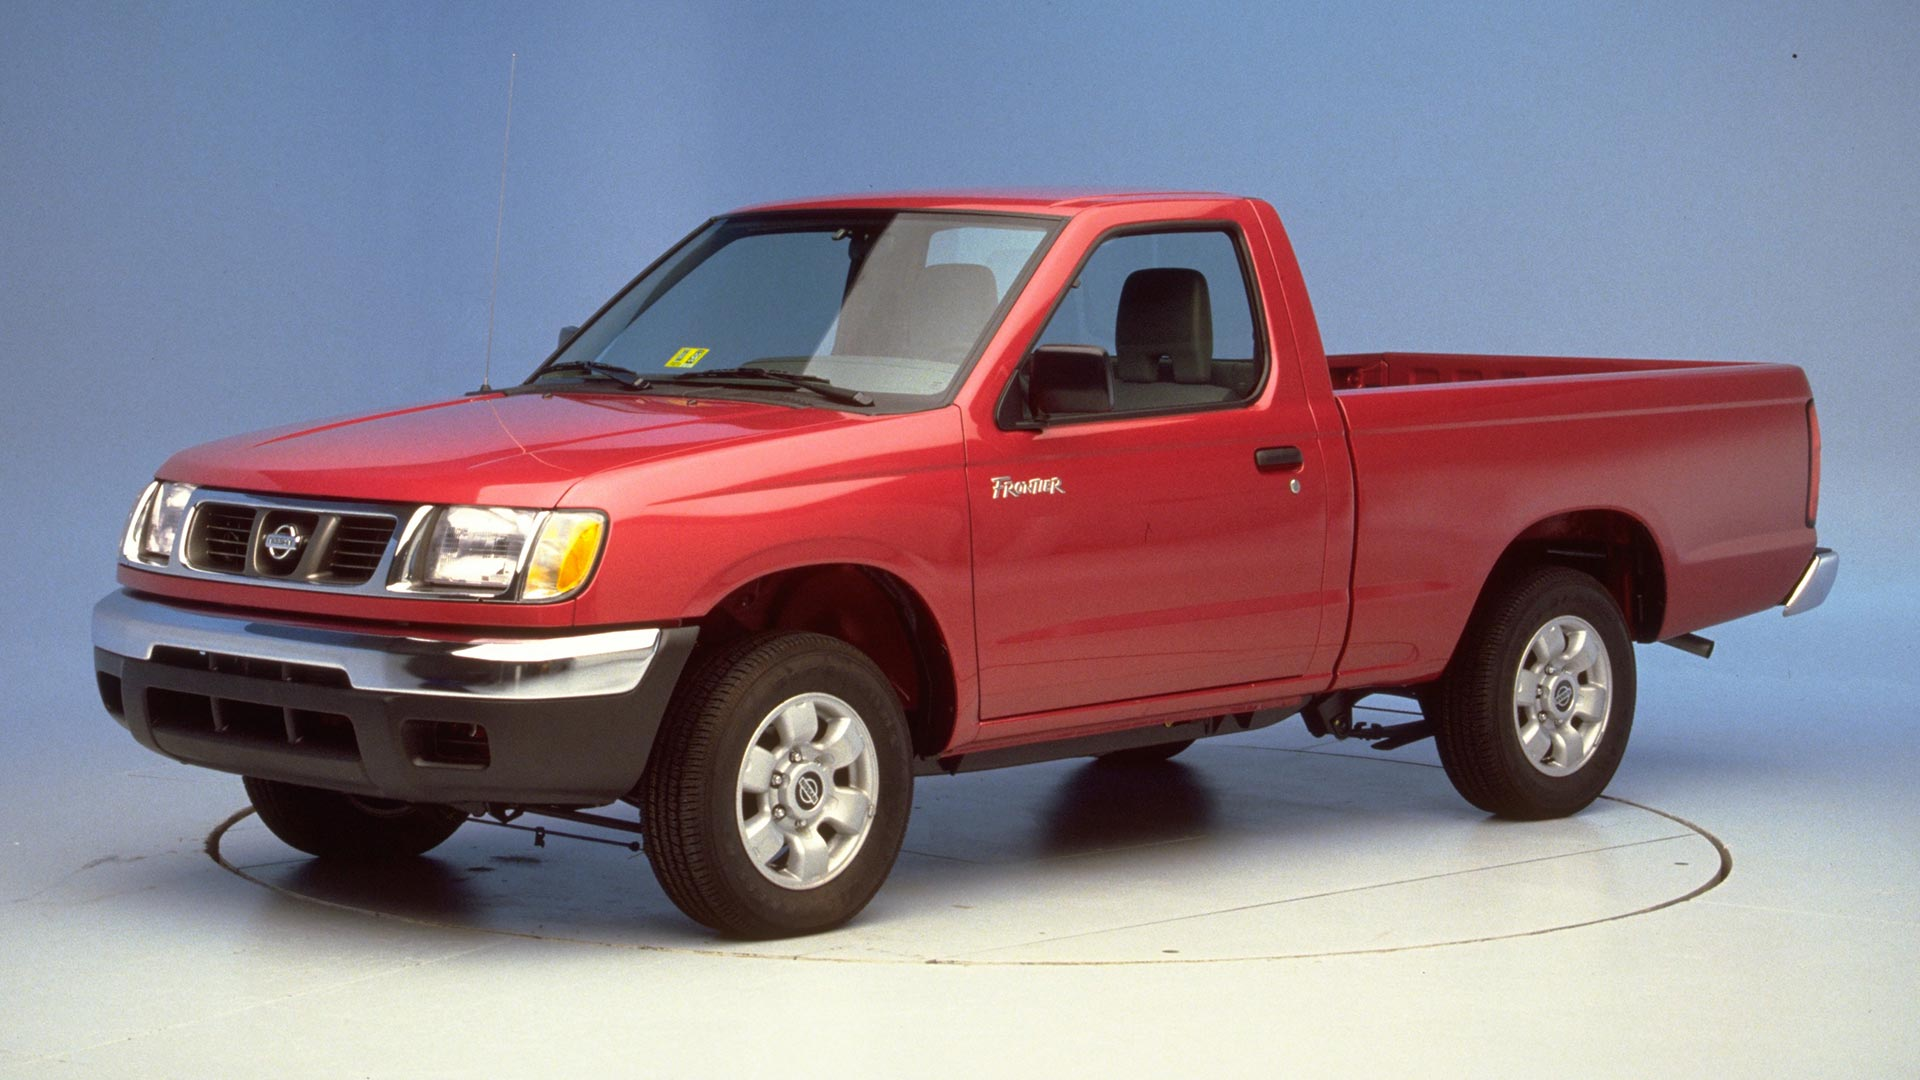 2003 Nissan Frontier Regular cab pickup